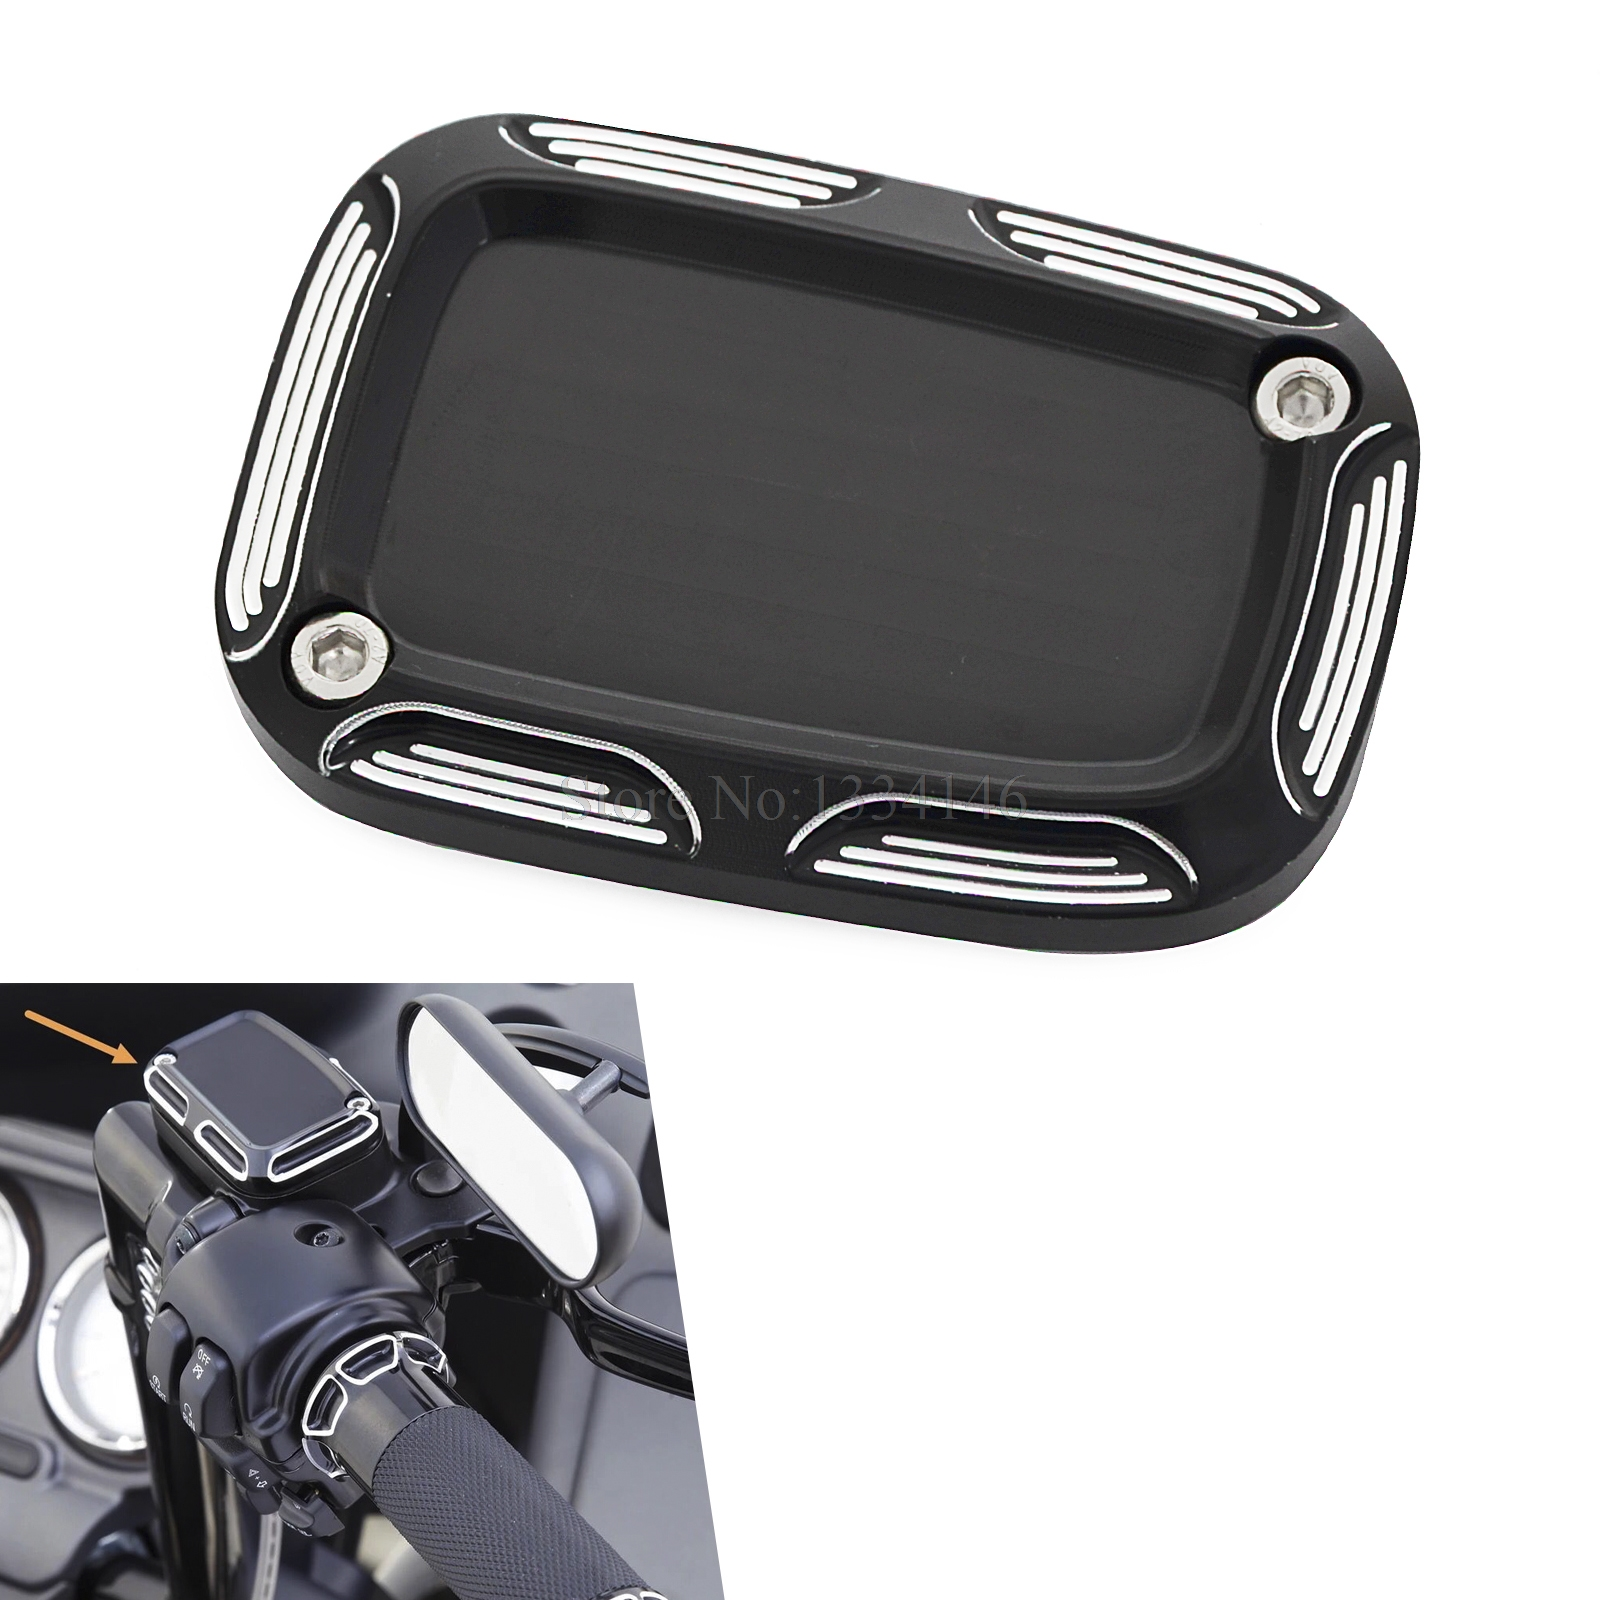 NICECNC Front Brake Master Cylinder Cover Cap For Harley Touring CVO Road King Electra Glide Ultra Classic VRSCAW VRSCR 06-2018 magnum black pearl upper front brake line 33 90 for harley